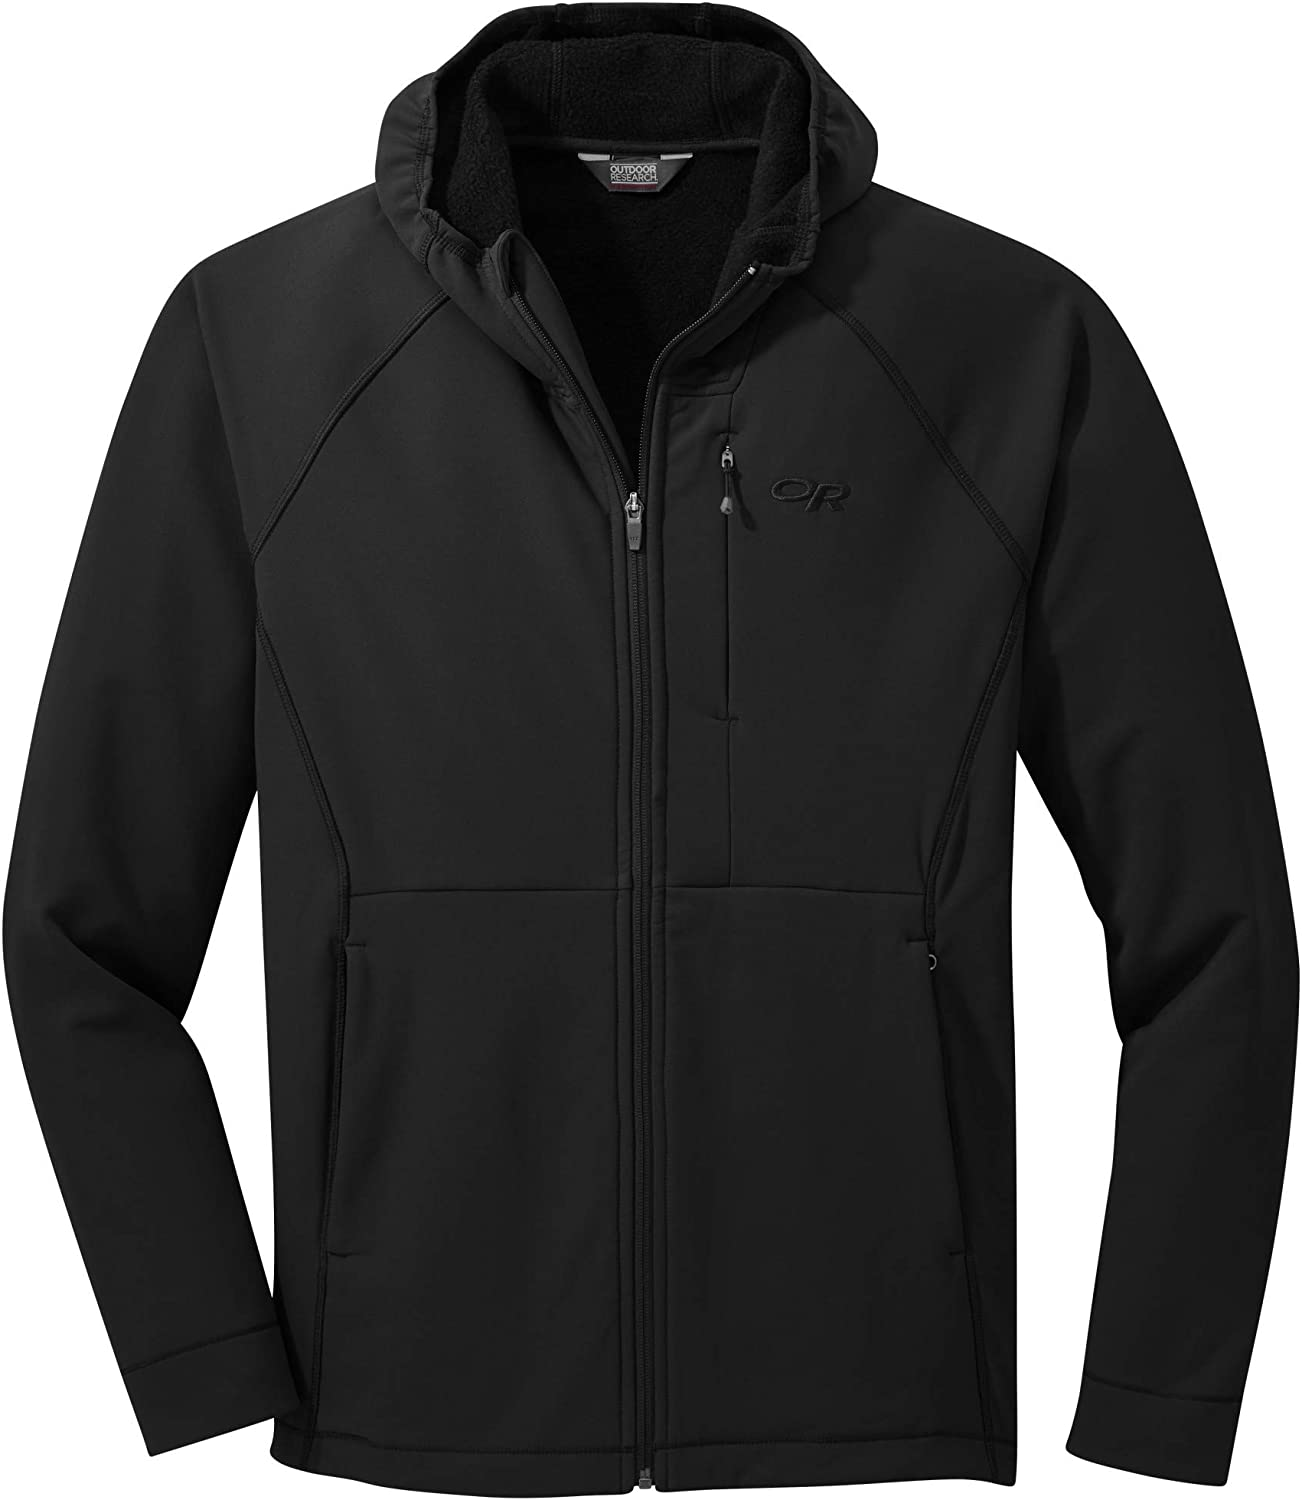 Outdoor Research Men's Georgetown Hooded Max 80% OFF Jacket Coz Warm - Virginia Beach Mall